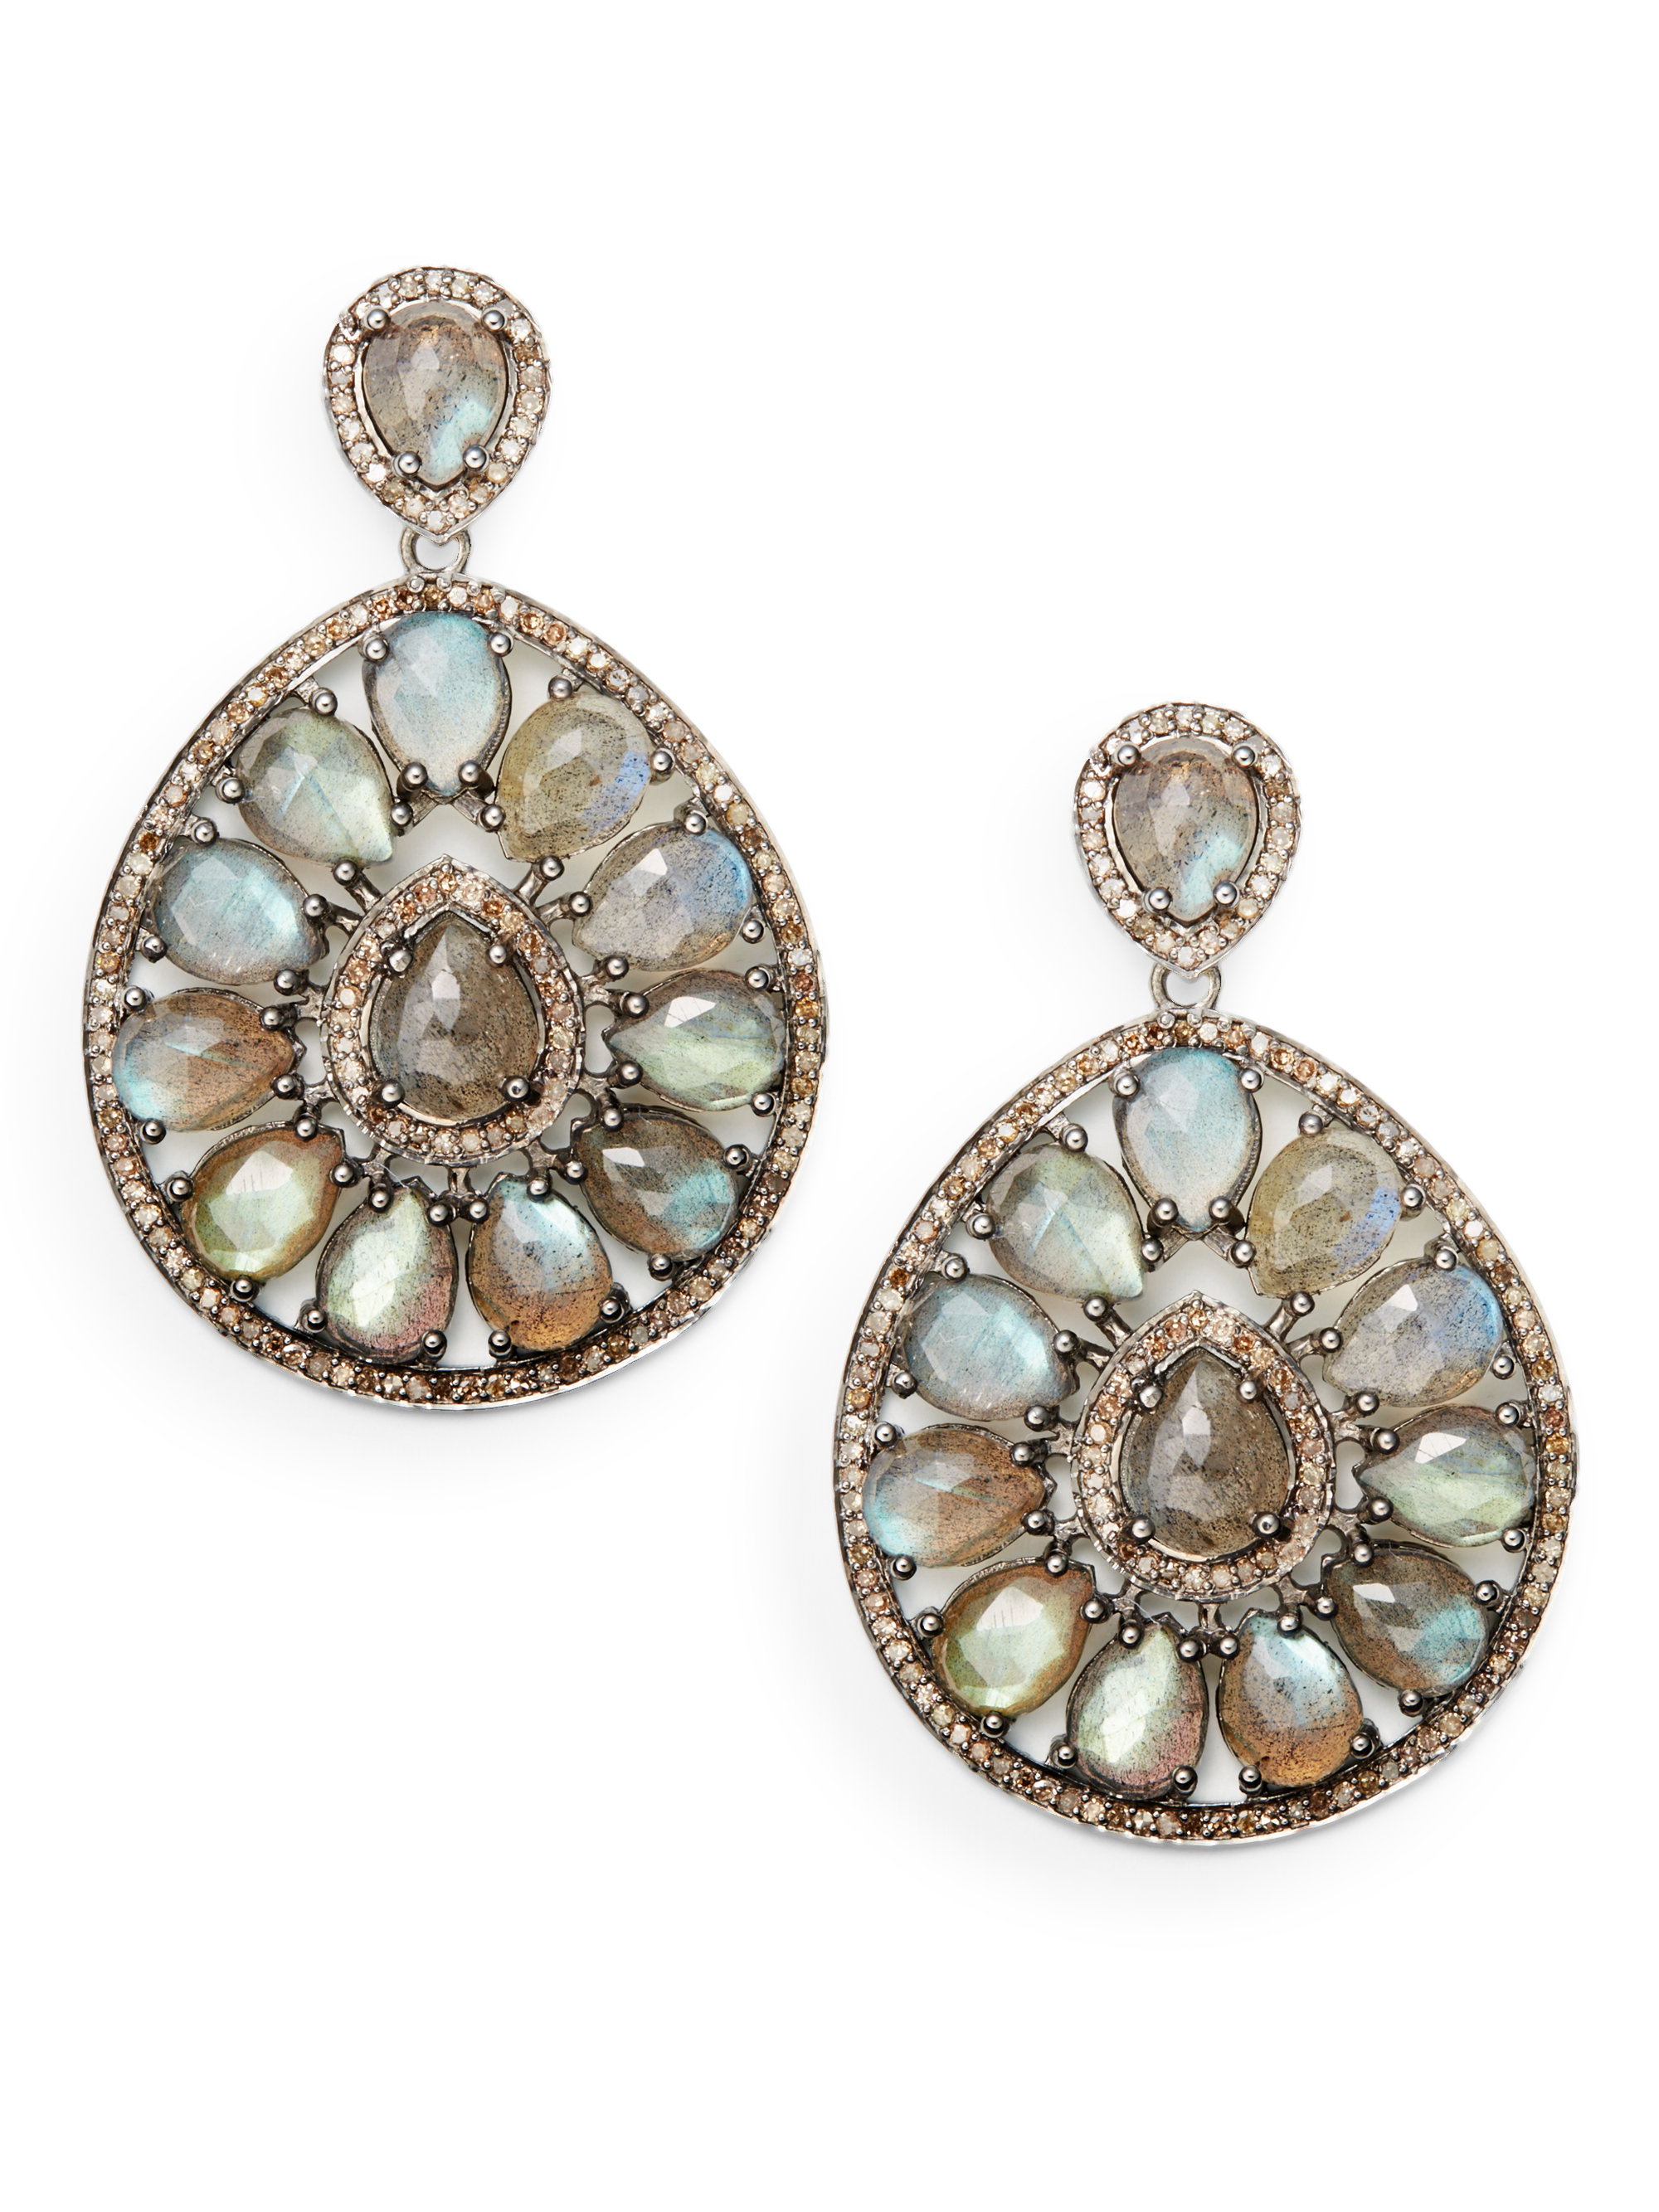 jewels diamond rockstar pinterest v earrings beautiful beyond pin champagne